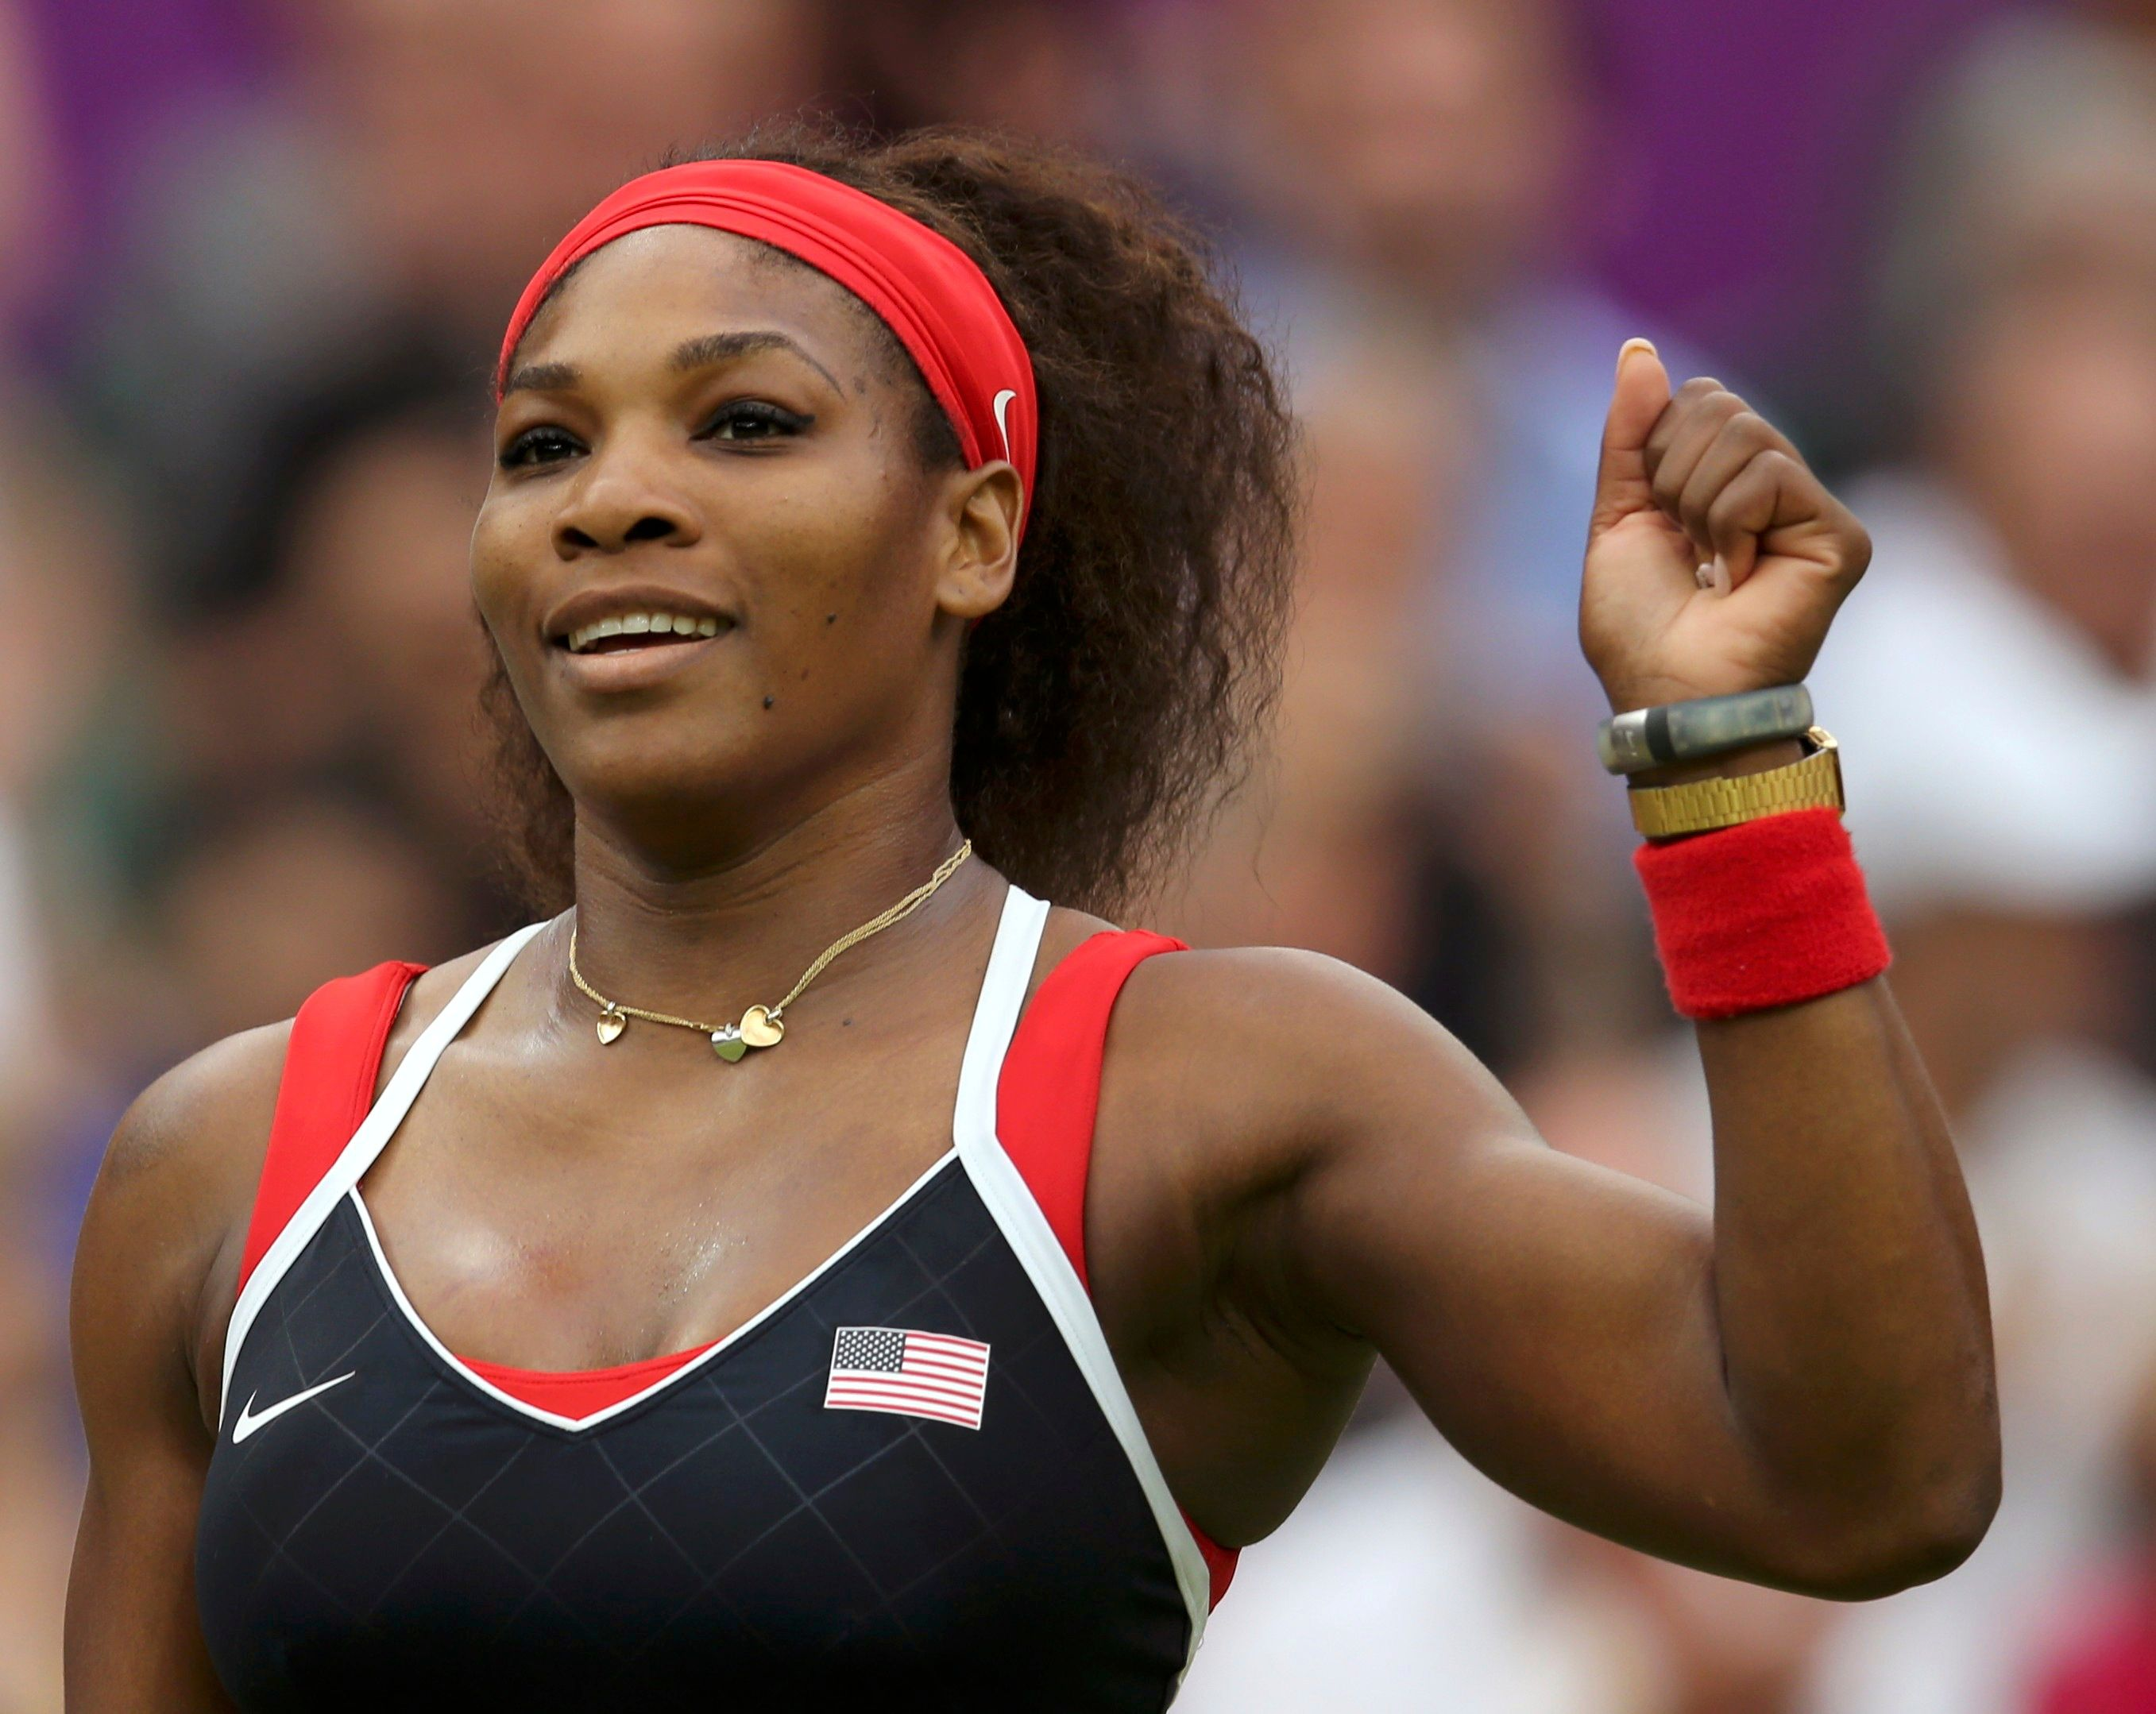 Serena Williams of the U.S. celebrates after defeating Russia's Zvonareva in their women's singles tennis match at the All England Lawn Tennis Club during the London 2012 Olympic Games